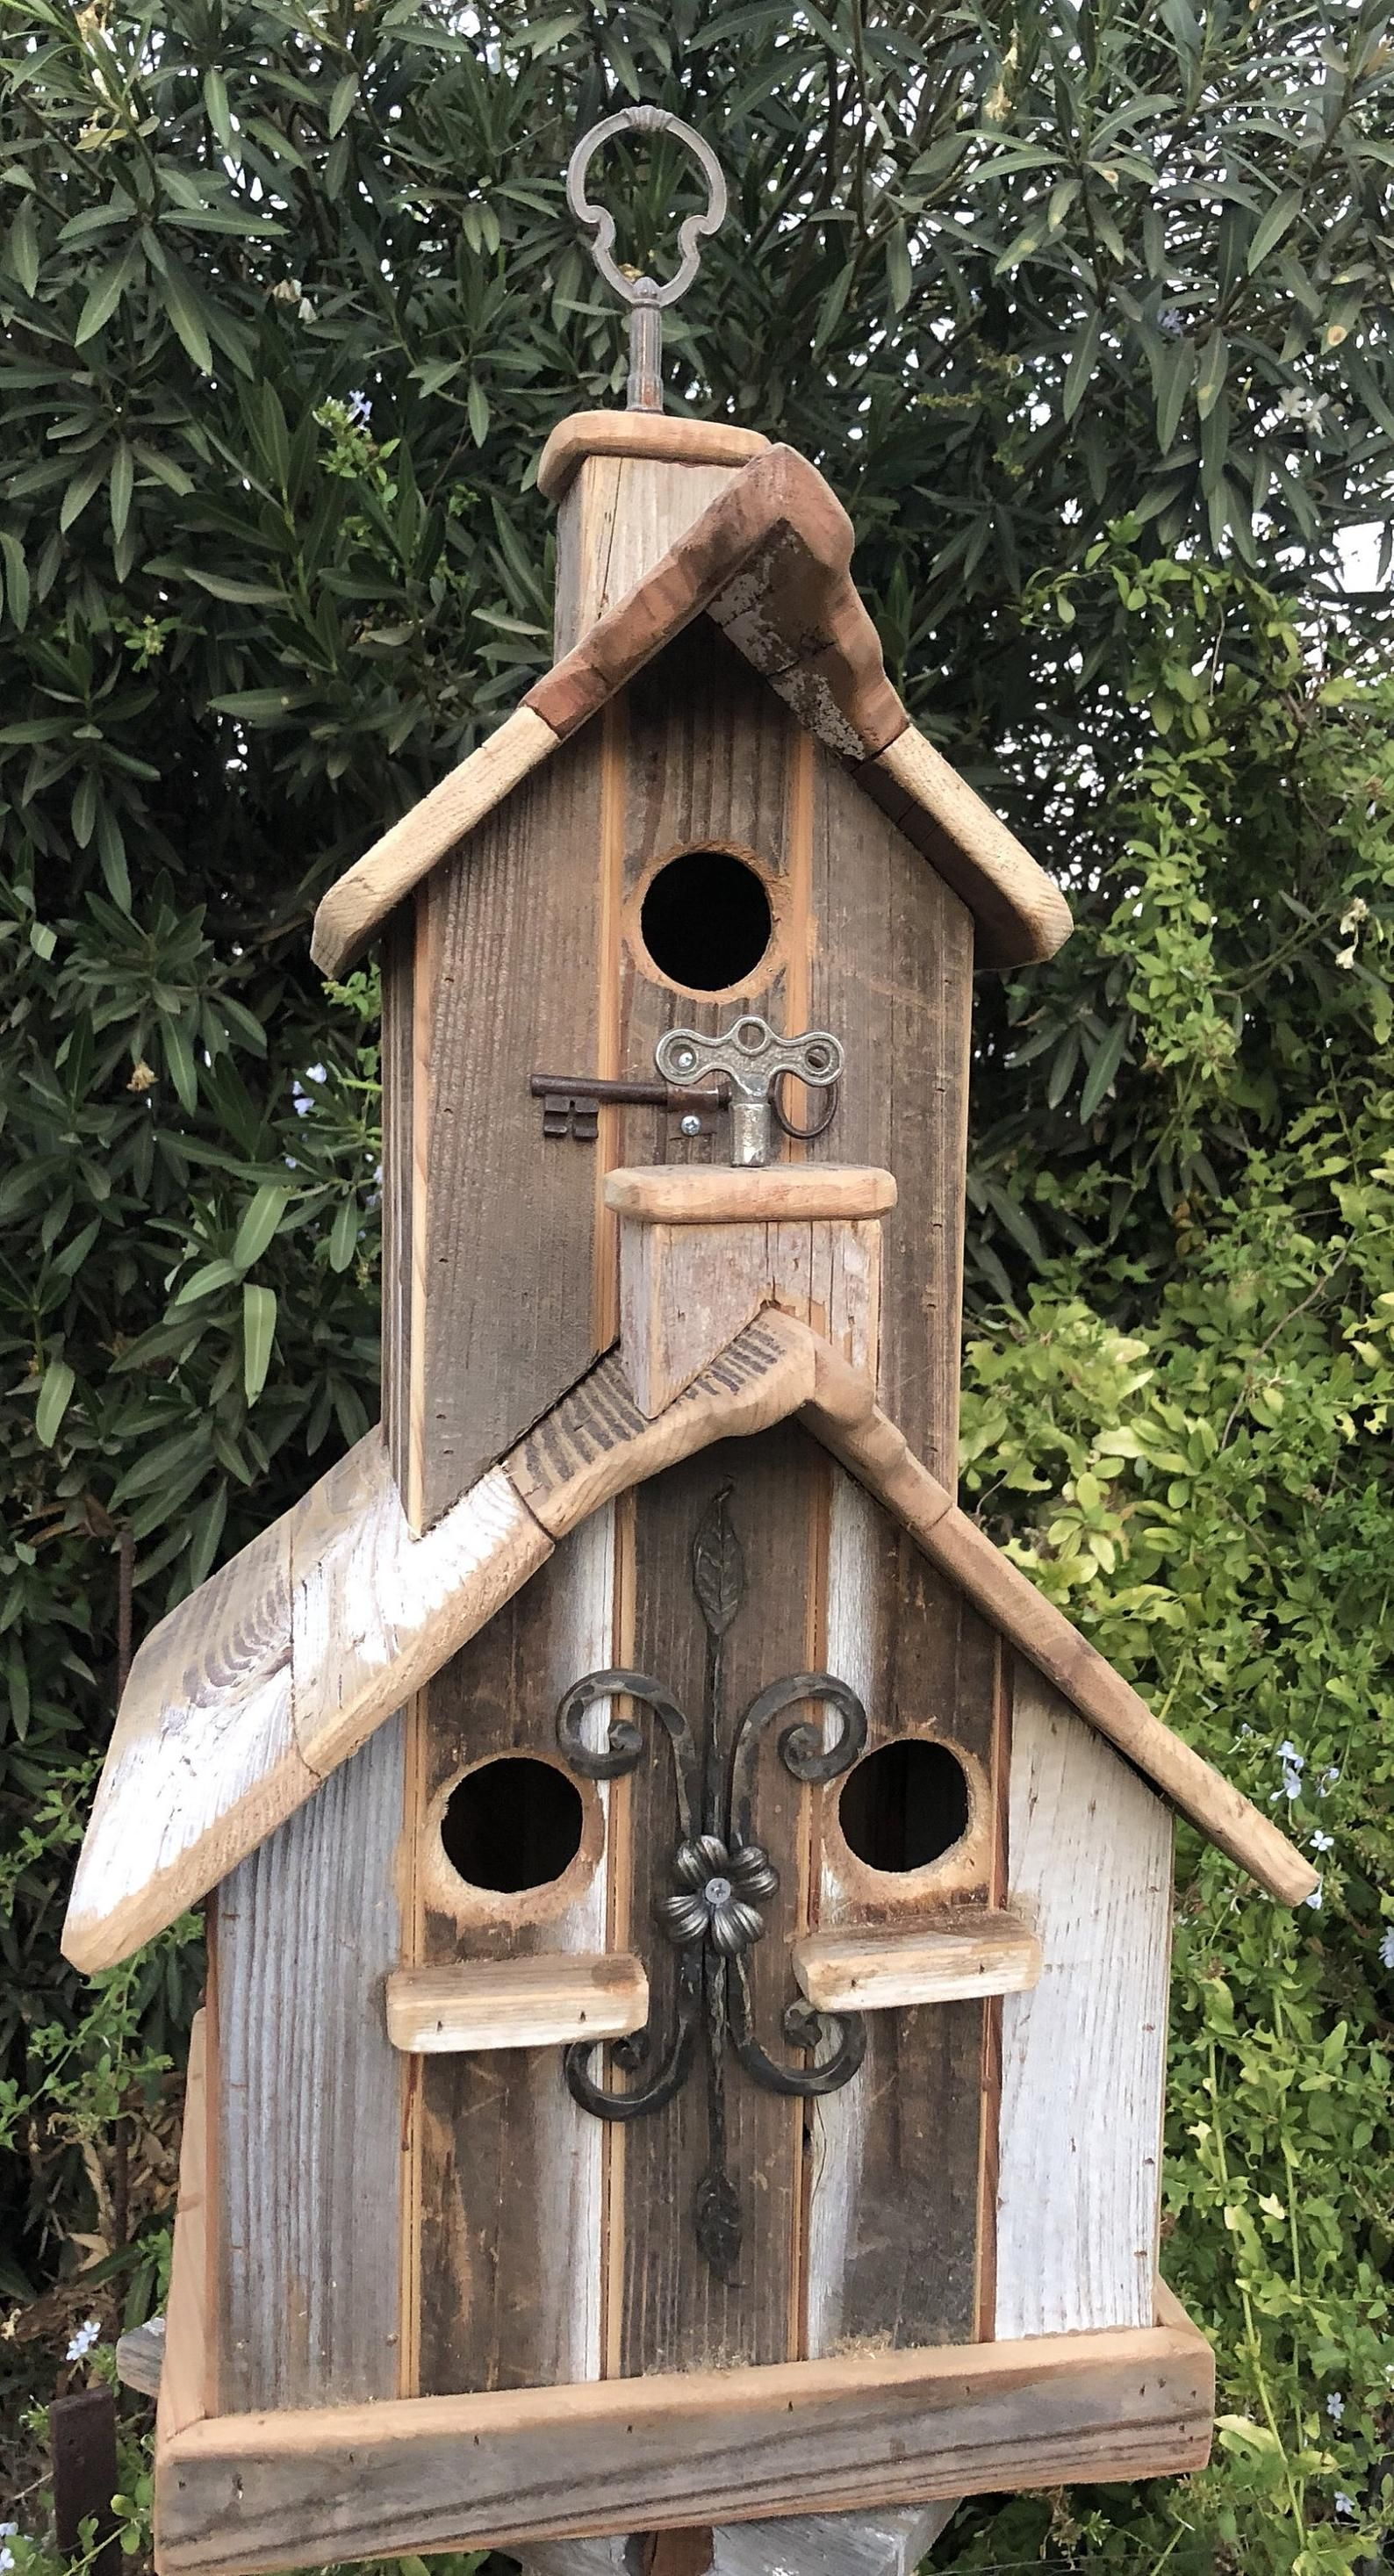 Two Story Rustic Birdhouse With Two Cupolas 3 Nesting Boxes